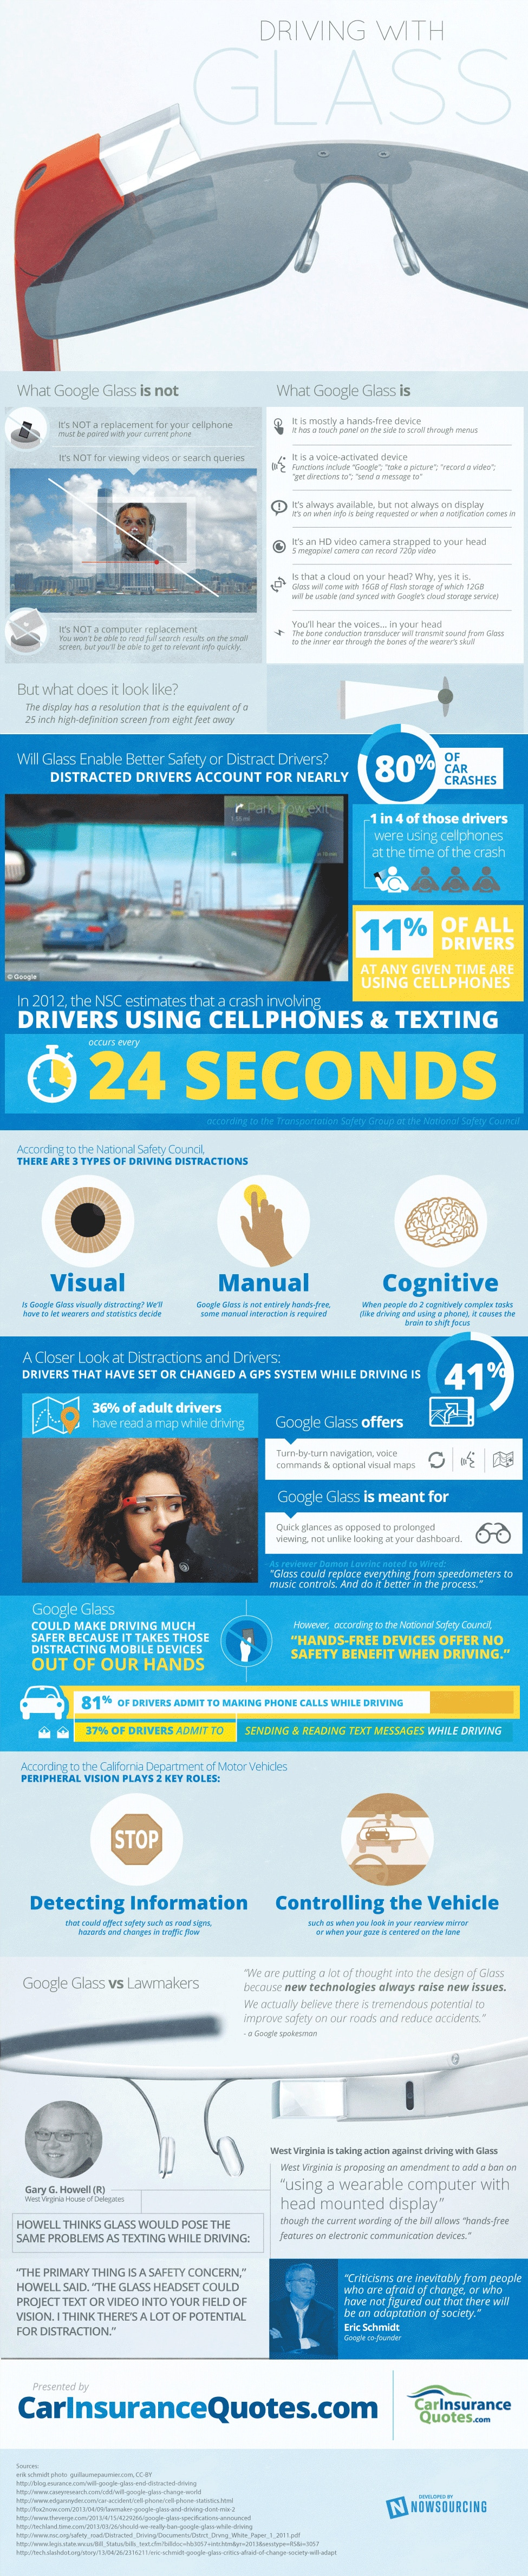 google-glass-driving-experience-infographic